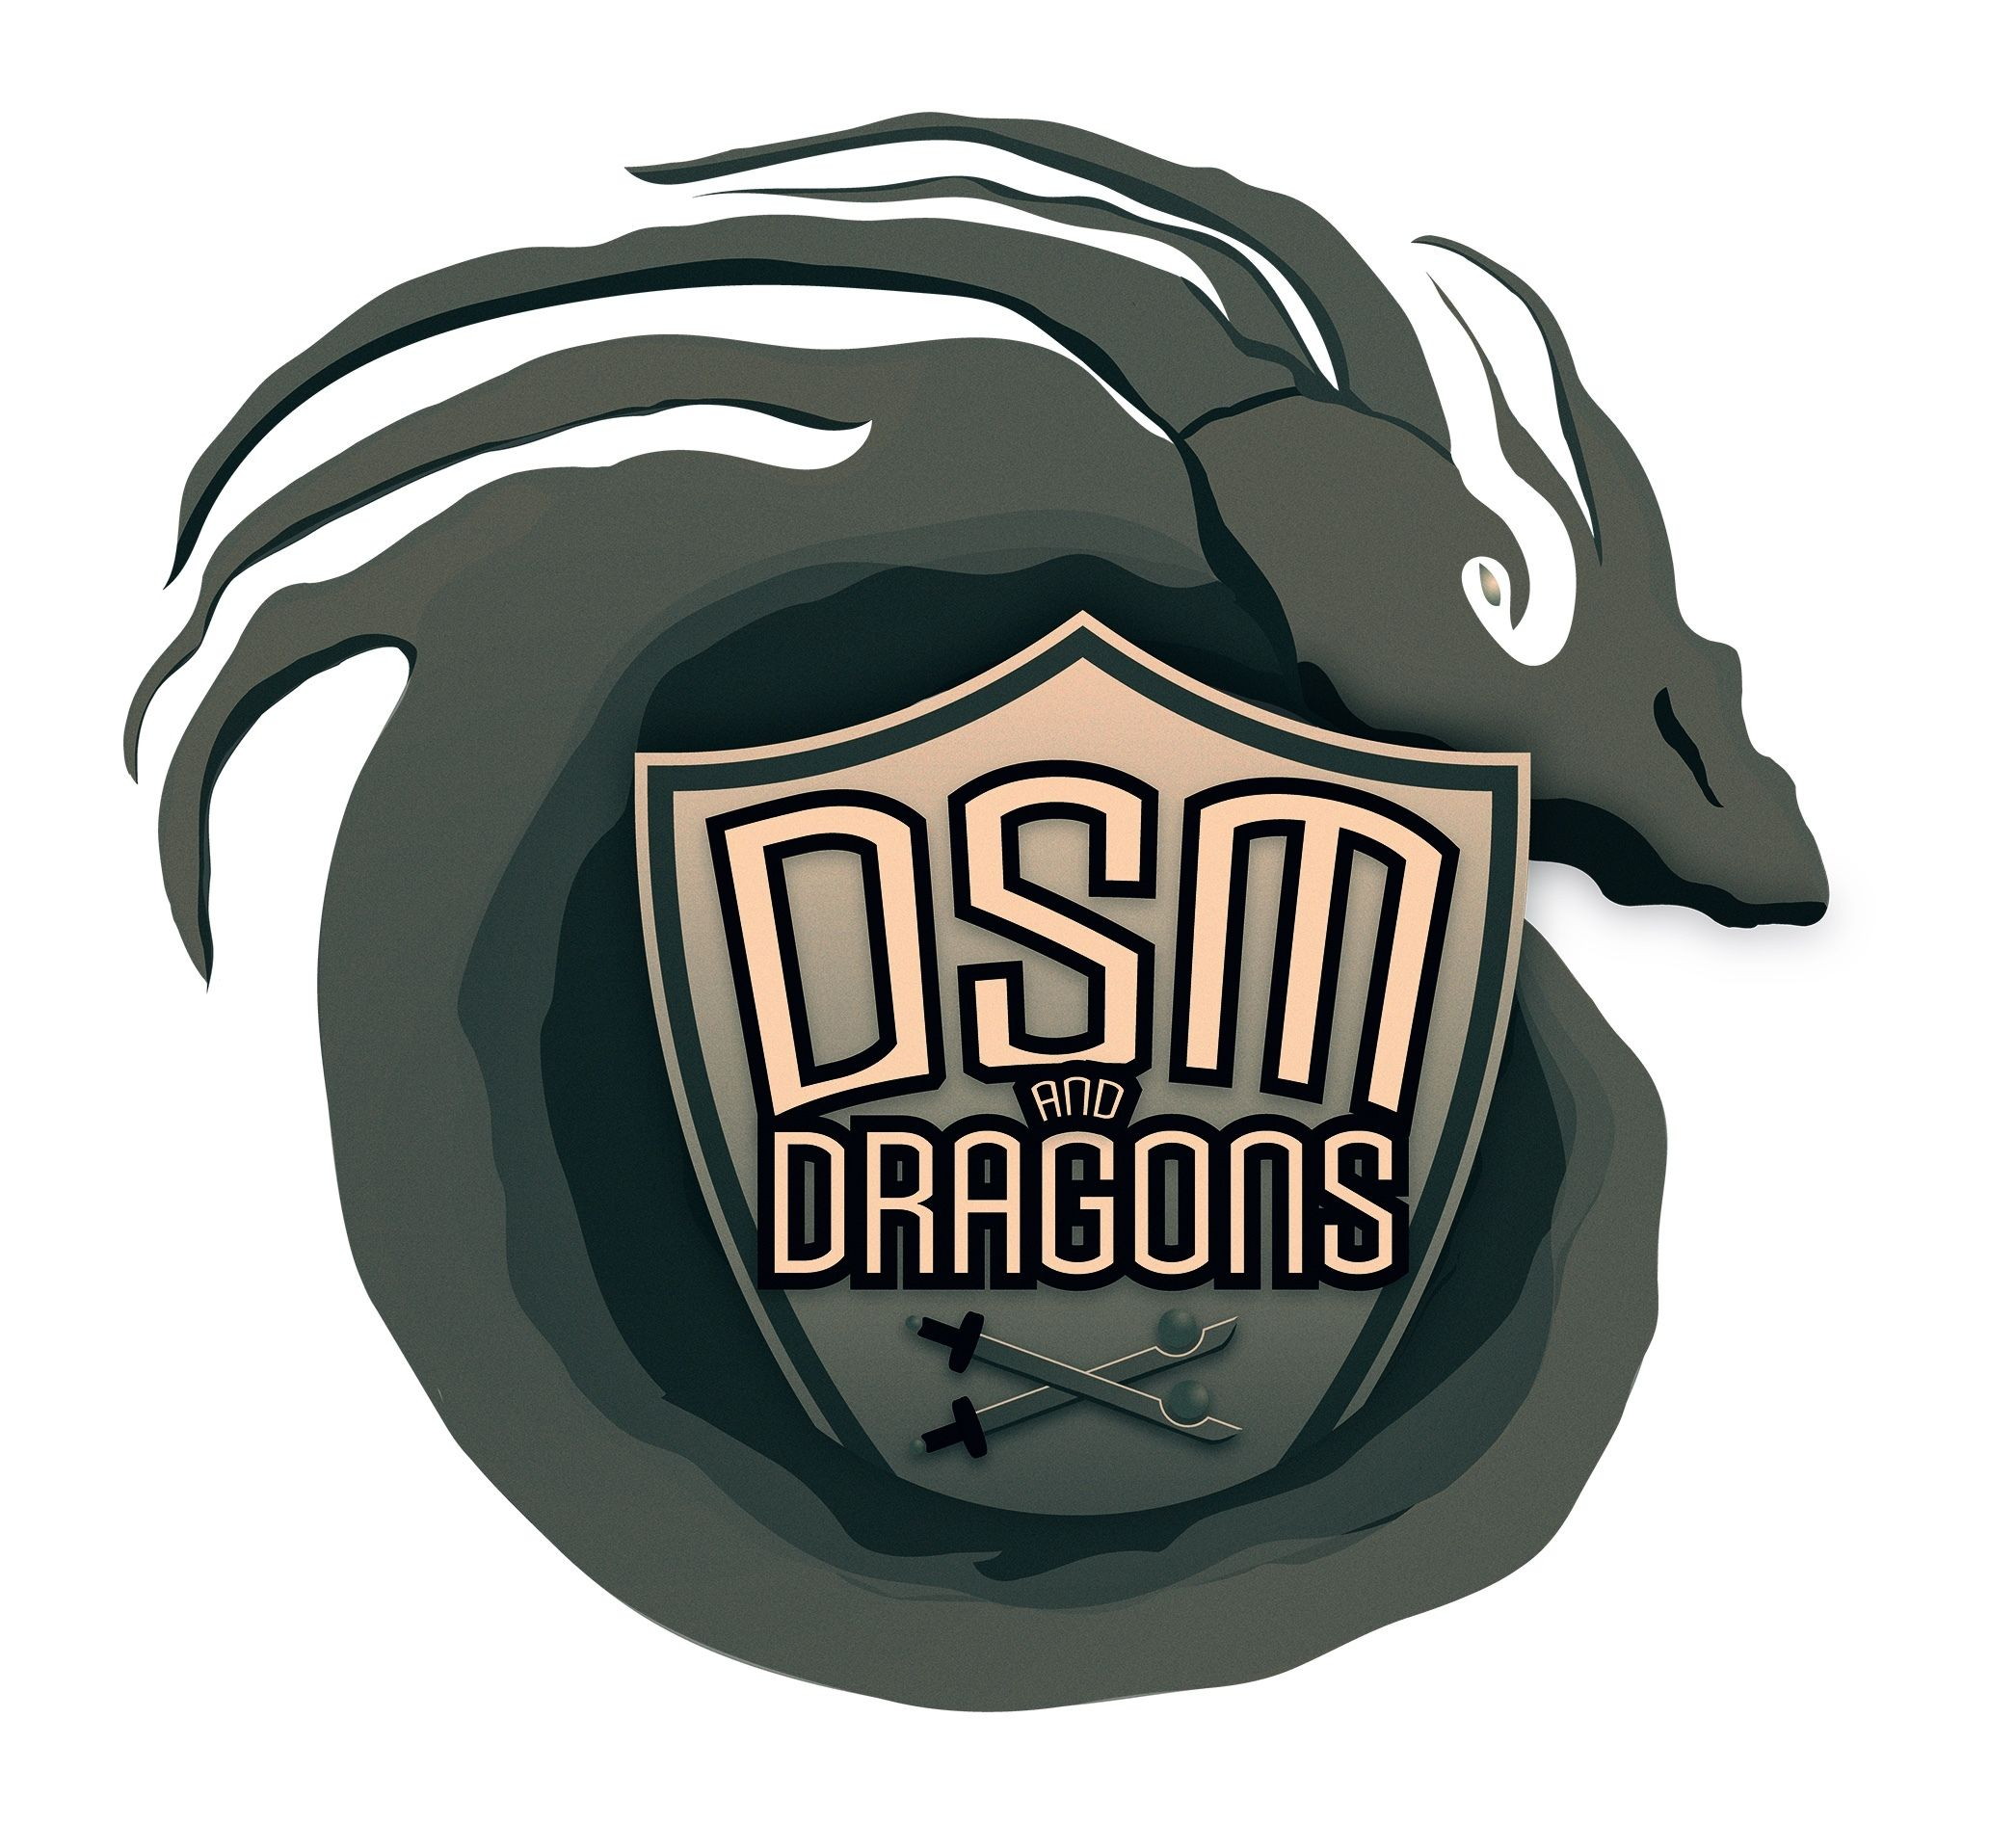 DSM and Dragons